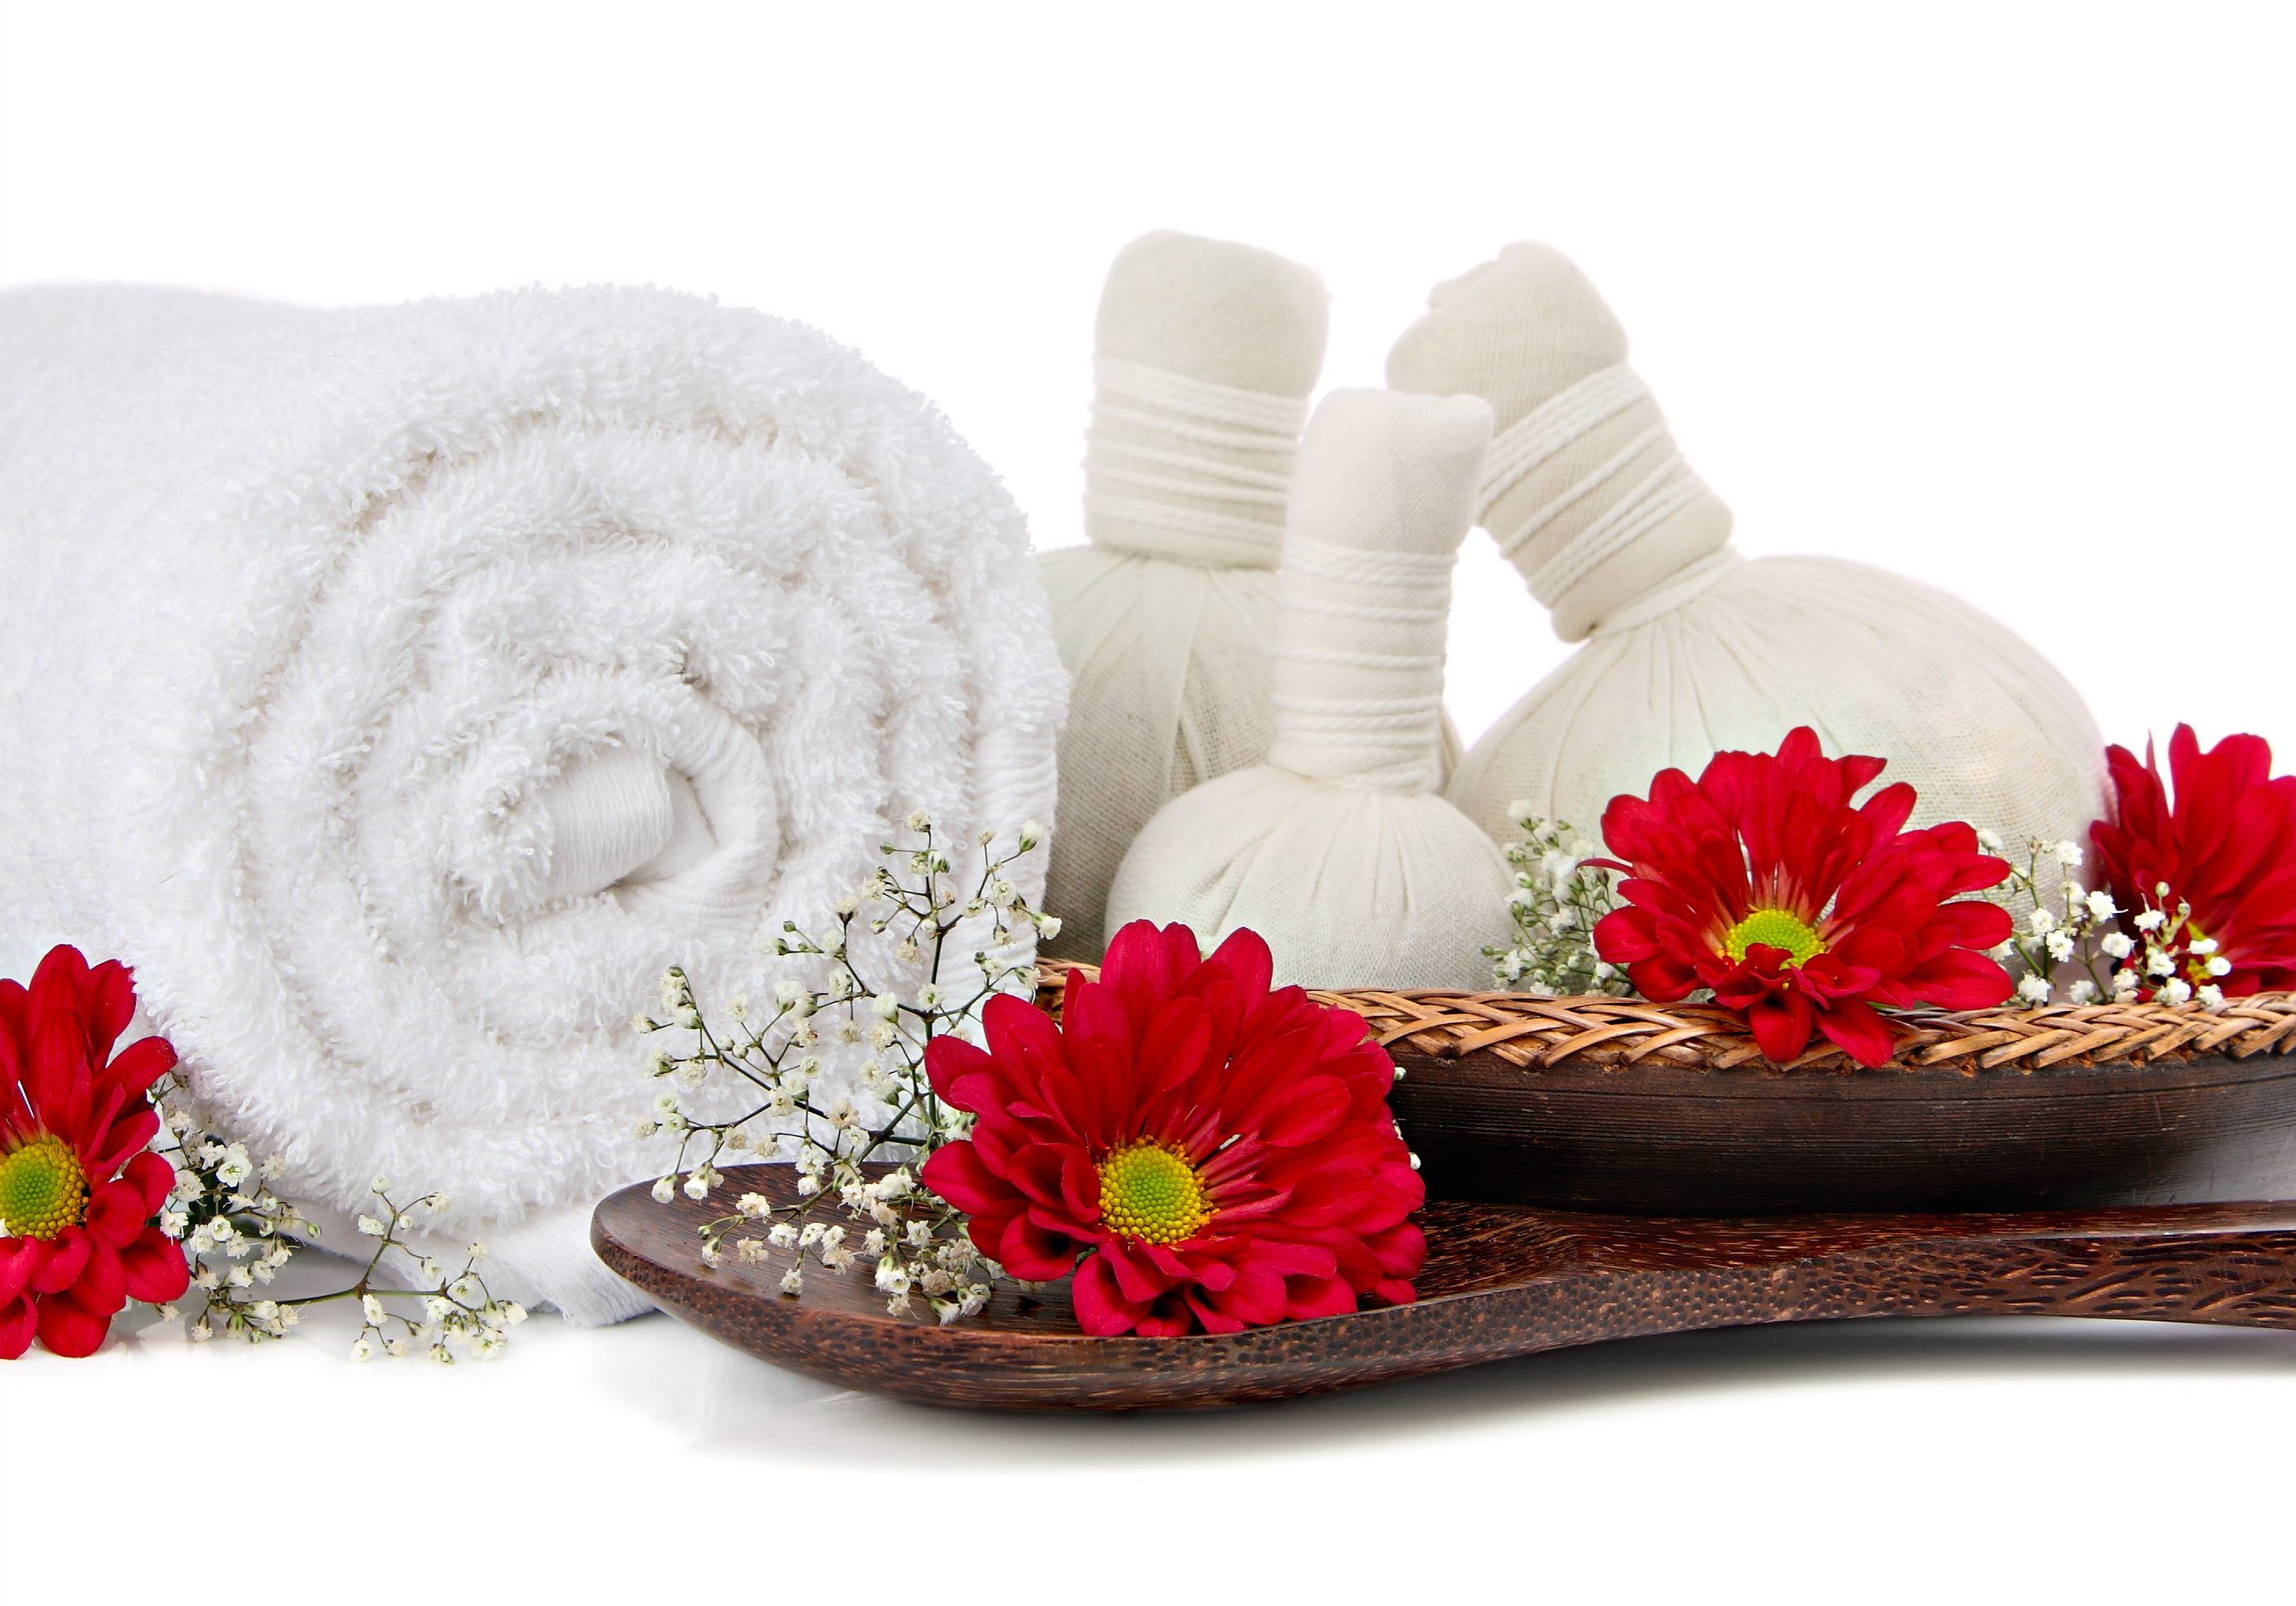 Spa massage setting with a fluffy towel, thai herbal compress massage balls